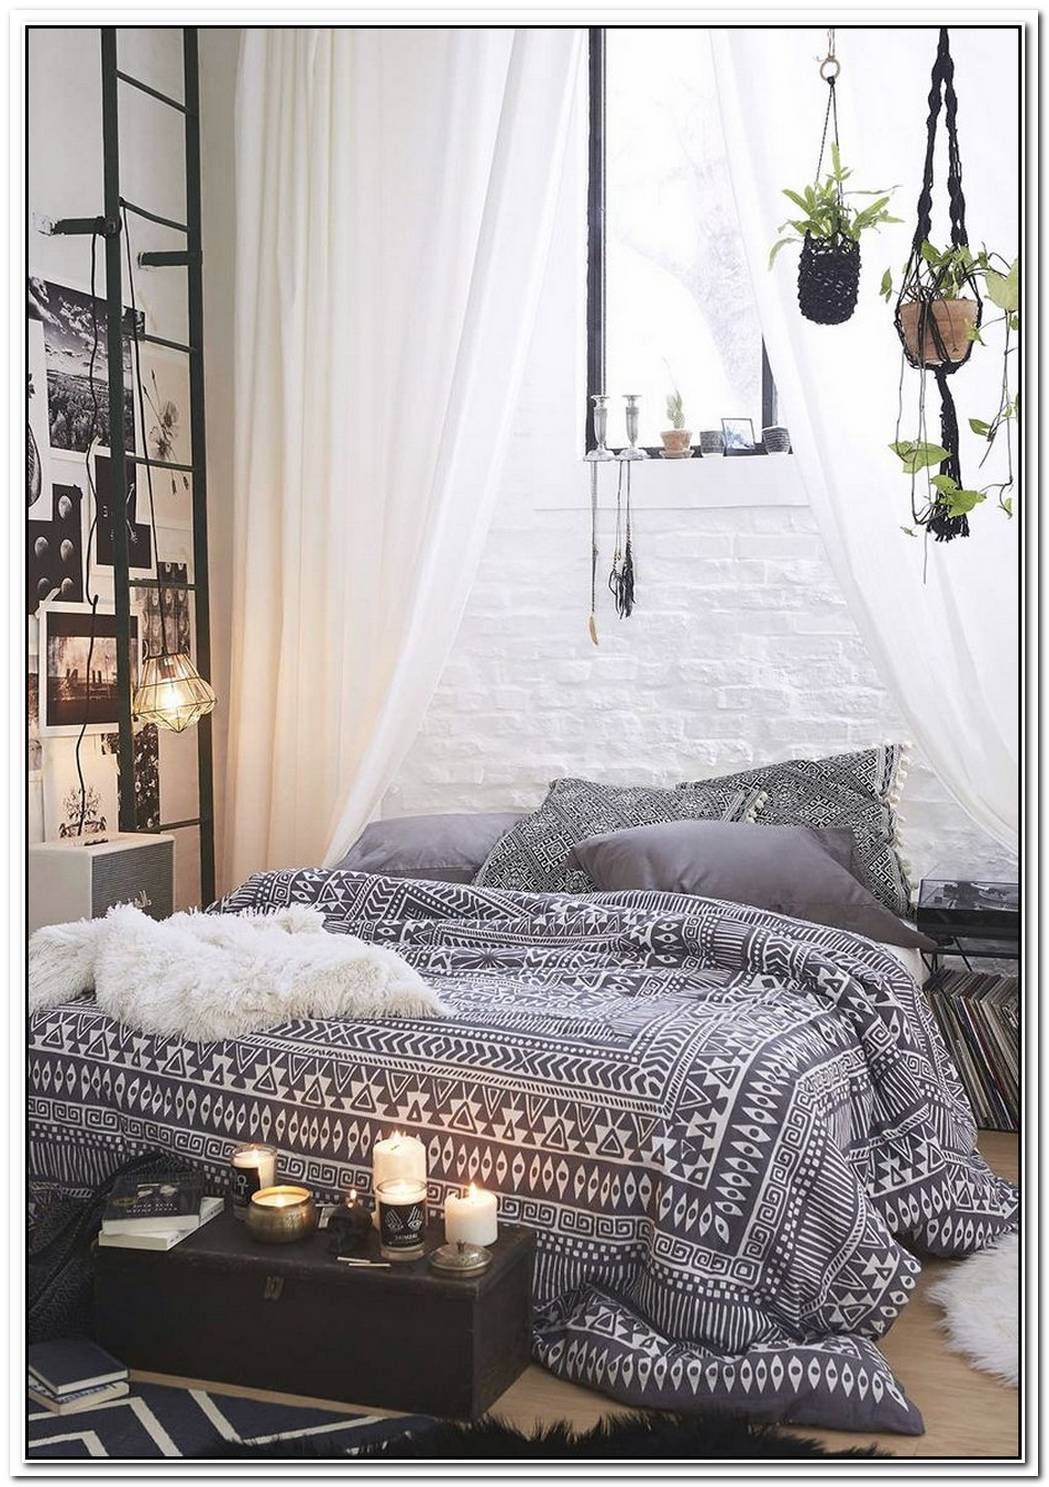 We'Re Digging This Bohemian Bedroom That Uses A Lot Of Black